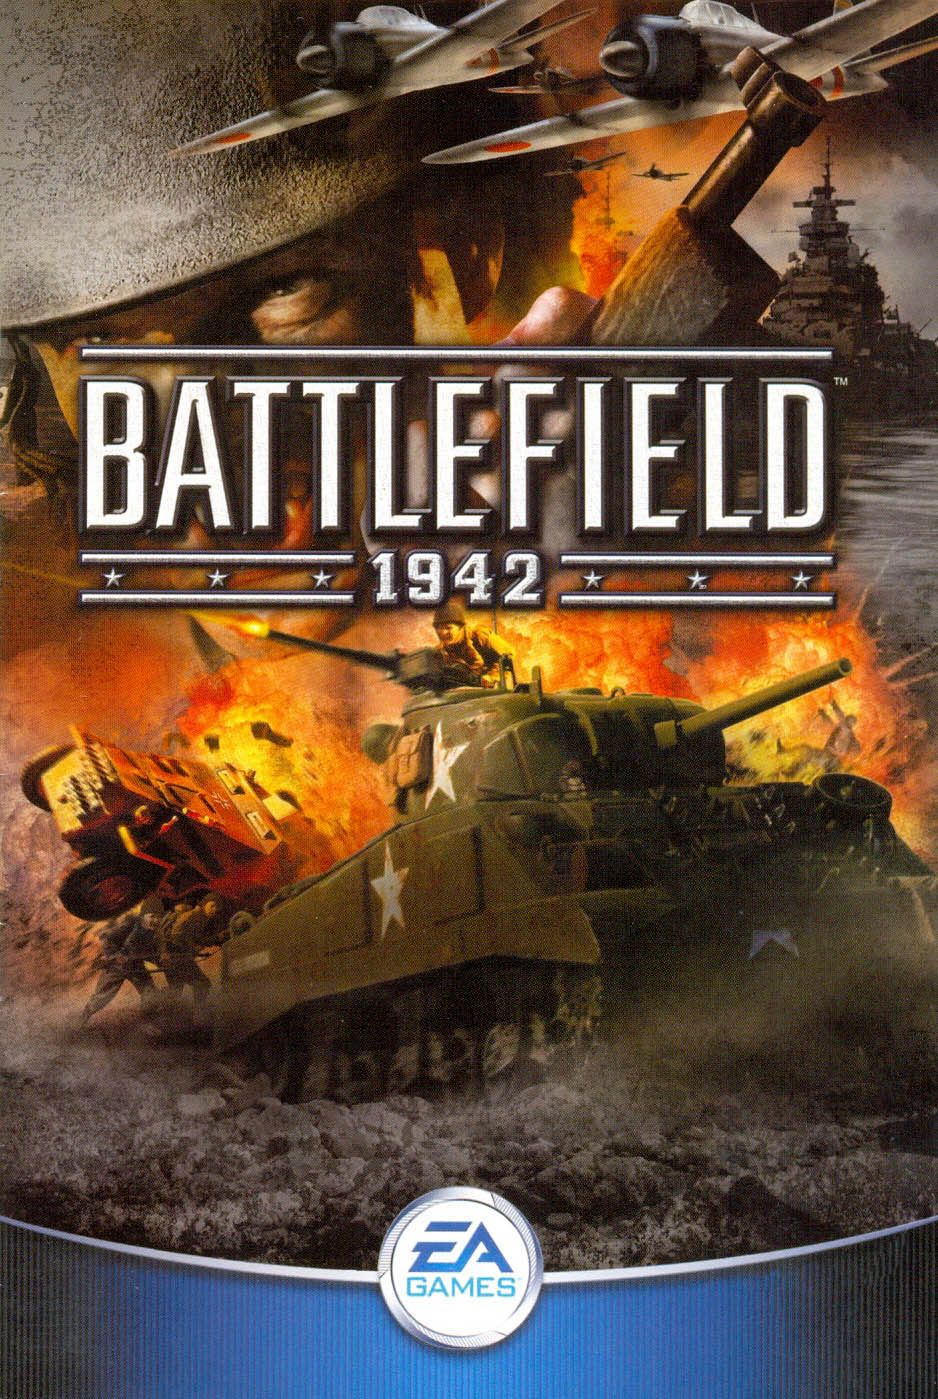 Battlefield 1942 With Images Battlefield 1942 Pc Games